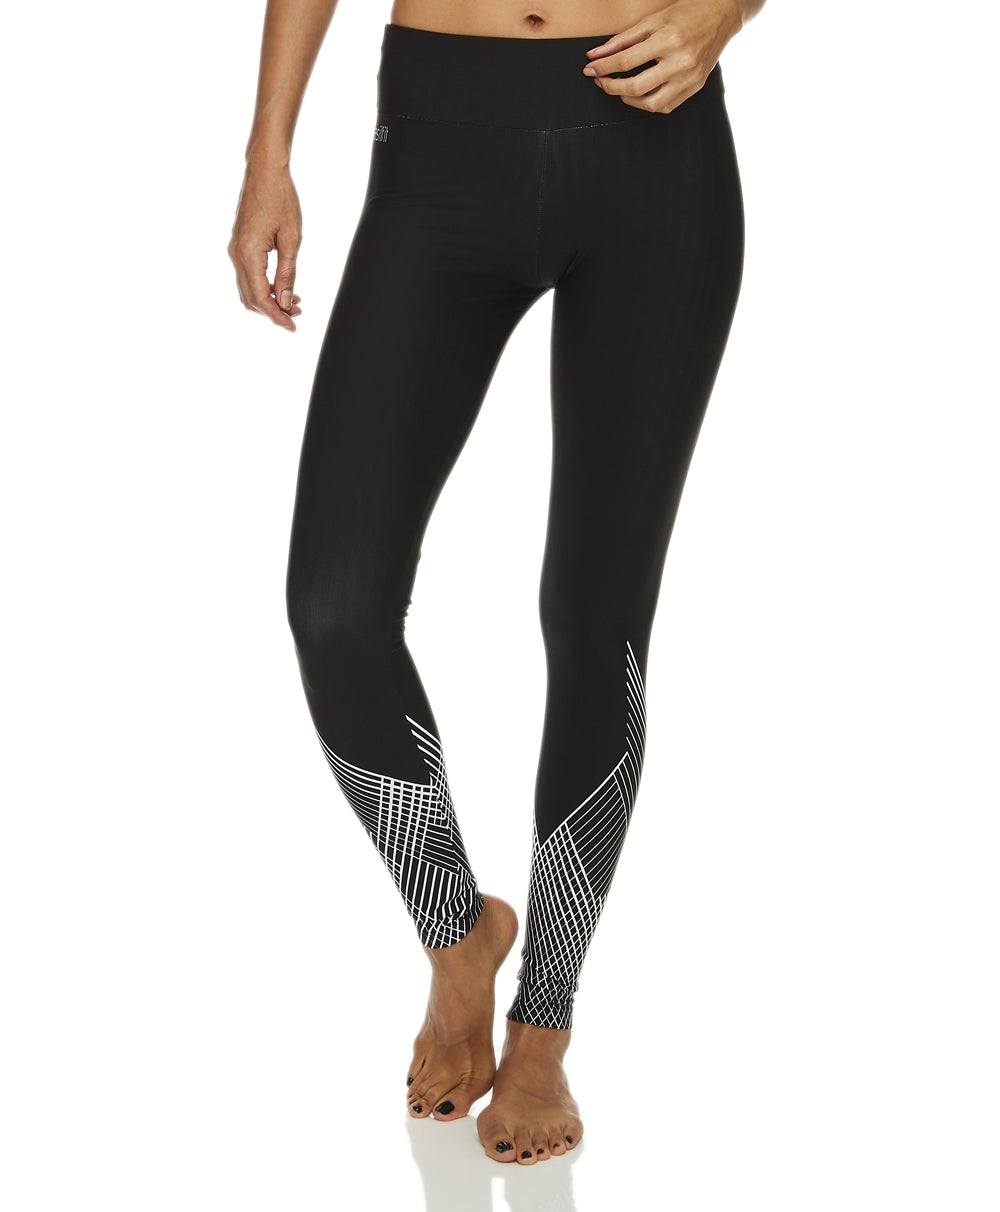 Belgrade Full Length Legging